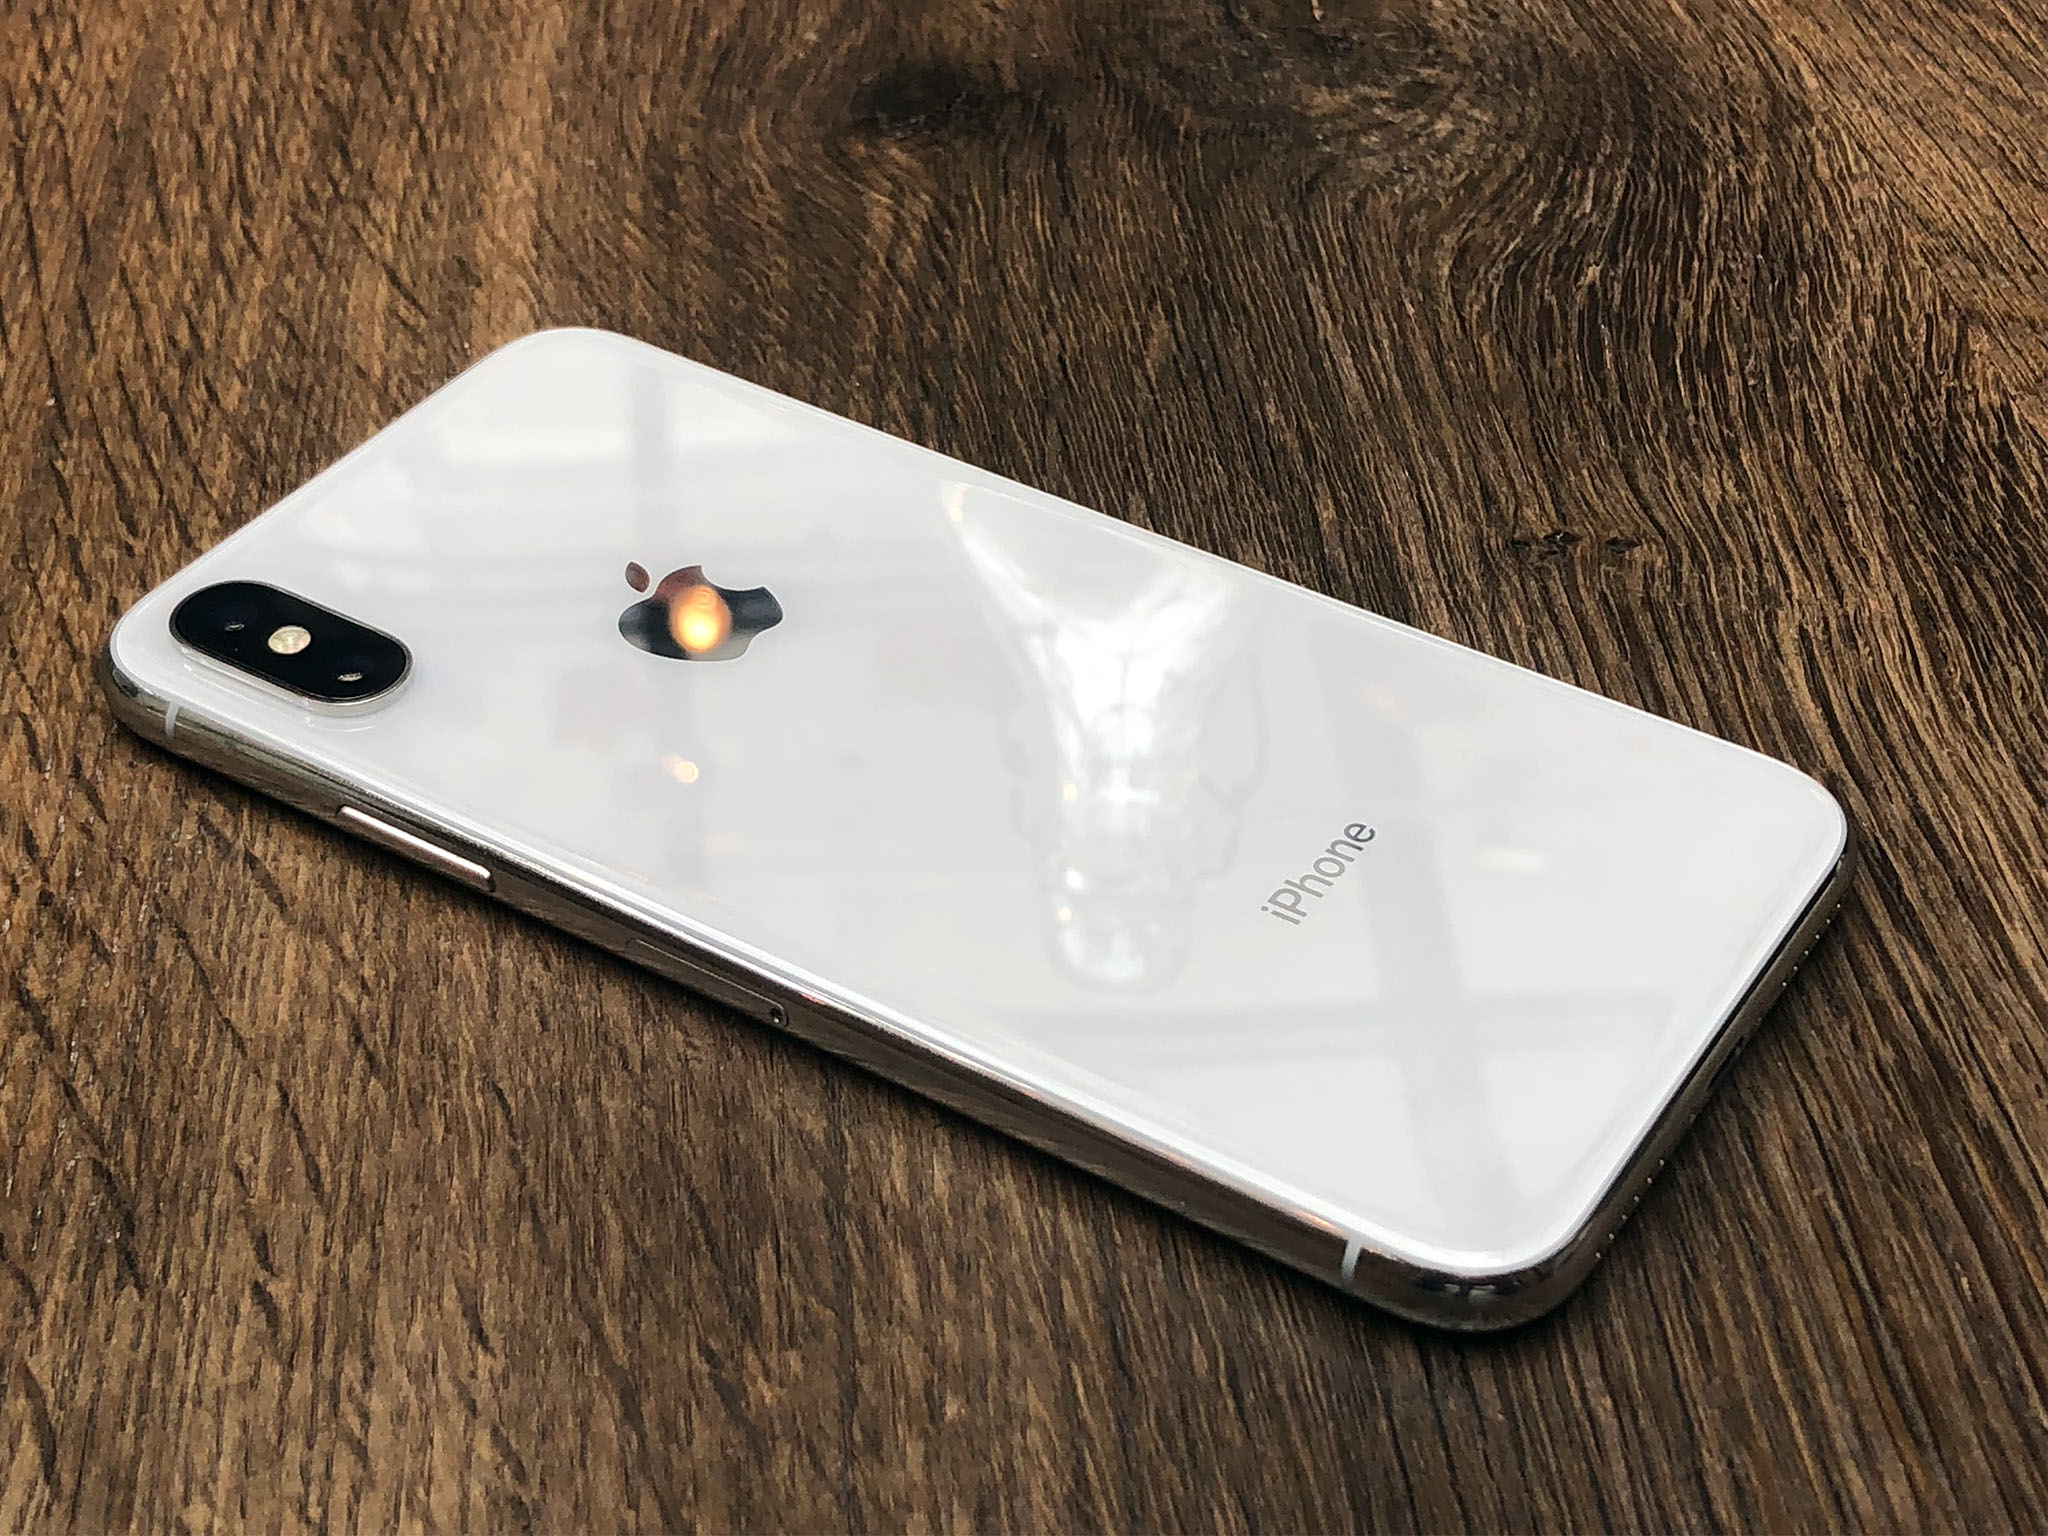 Broken Iphone Battery Wallpaper Iphone X Review The Best Damn Product Apple Has Ever Made